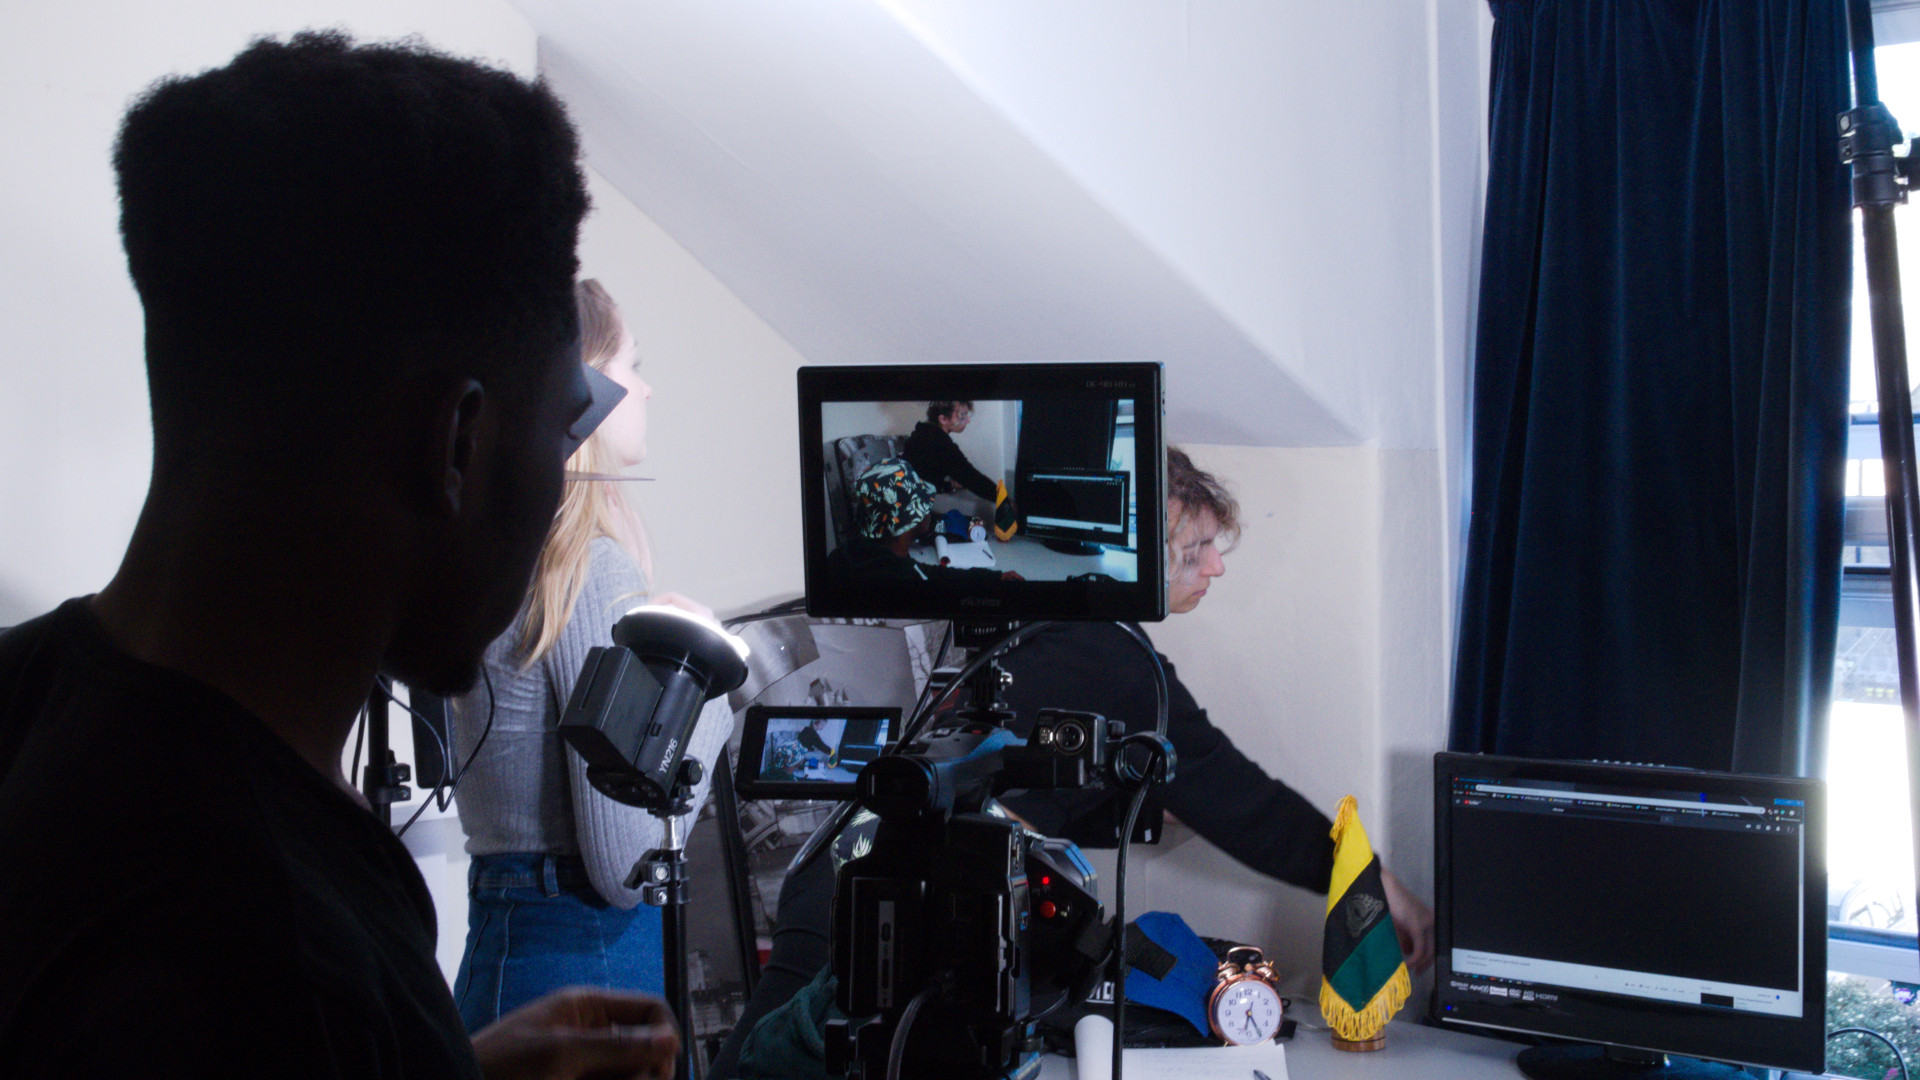 Behind the scenes photo from Movement Films narrative music video Jepeto Knockz: Life Now